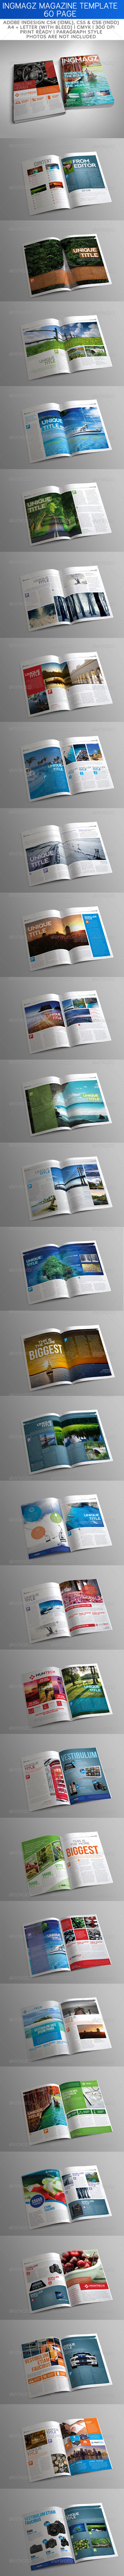 GraphicRiver 60 Page INGMAGZ Magazine Template 3817053